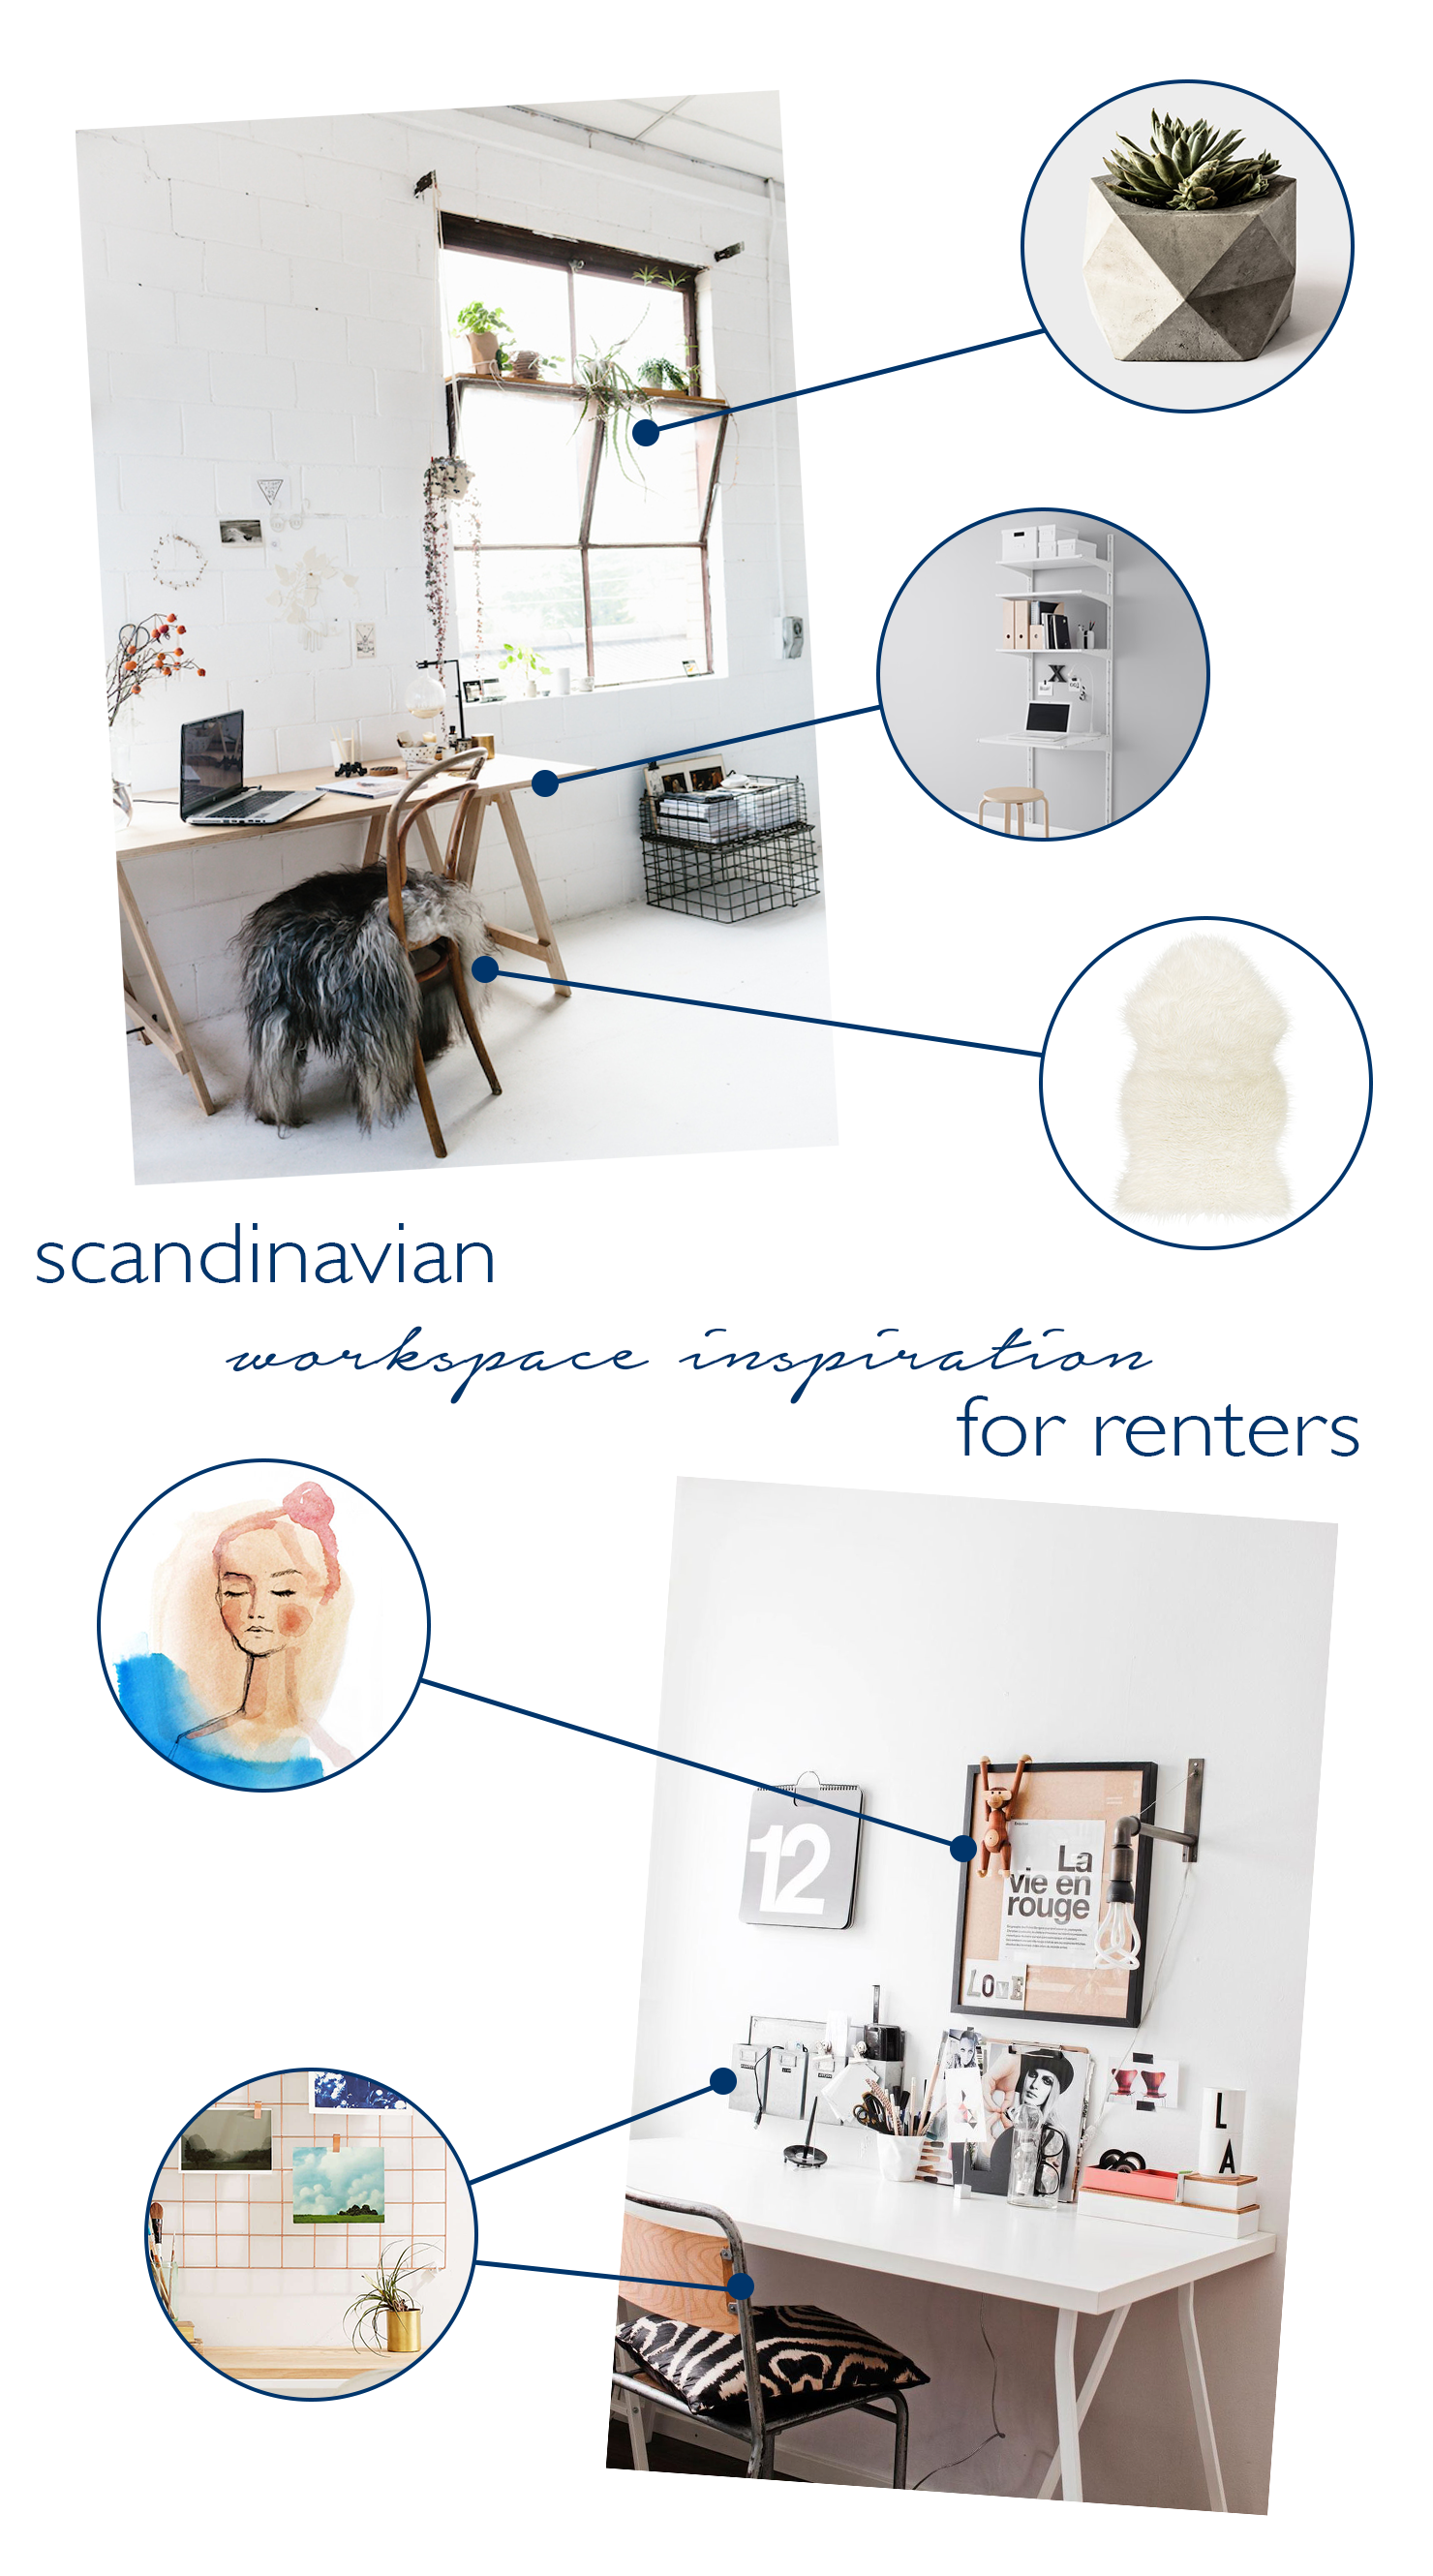 Scandinavian Workspace Inspiration for Renters via Idle Hands Awake